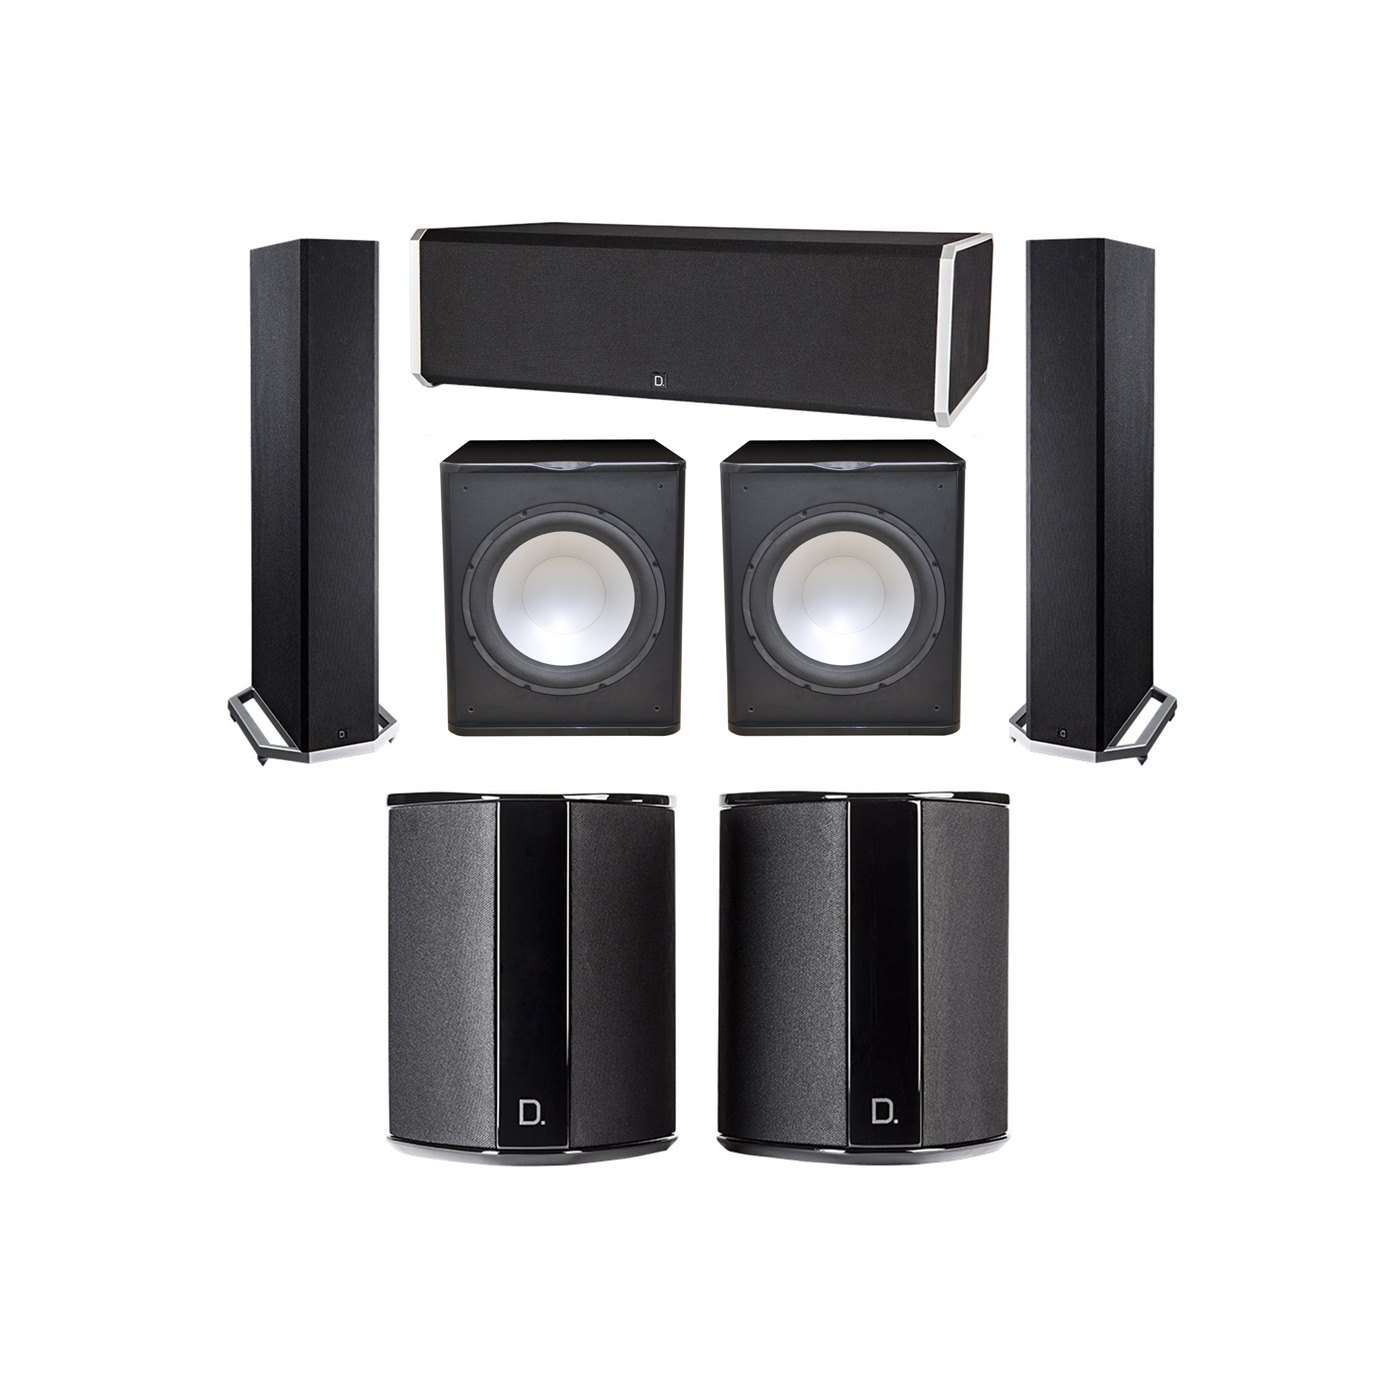 Definitive Technology 5.2 System with 2 BP9020 Tower Speakers, 1 CS9080 Center Channel Speaker, 2 SR9040 Surround Speaker, 2 Premier Acoustic PA-150 Subwoofer